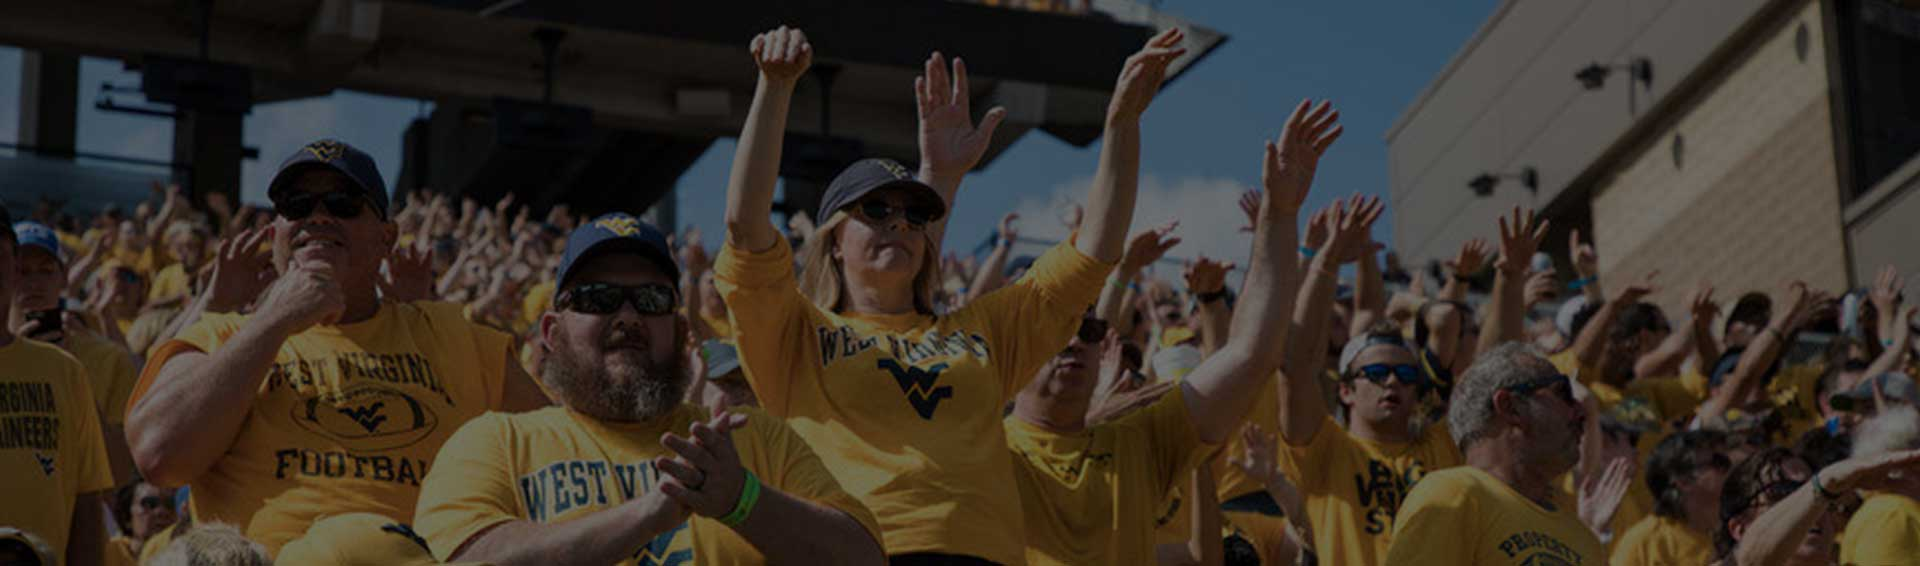 CAMPING WORLD BOWL FAN EVENTS Join fellow Mountaineers at fan events in Orlando!